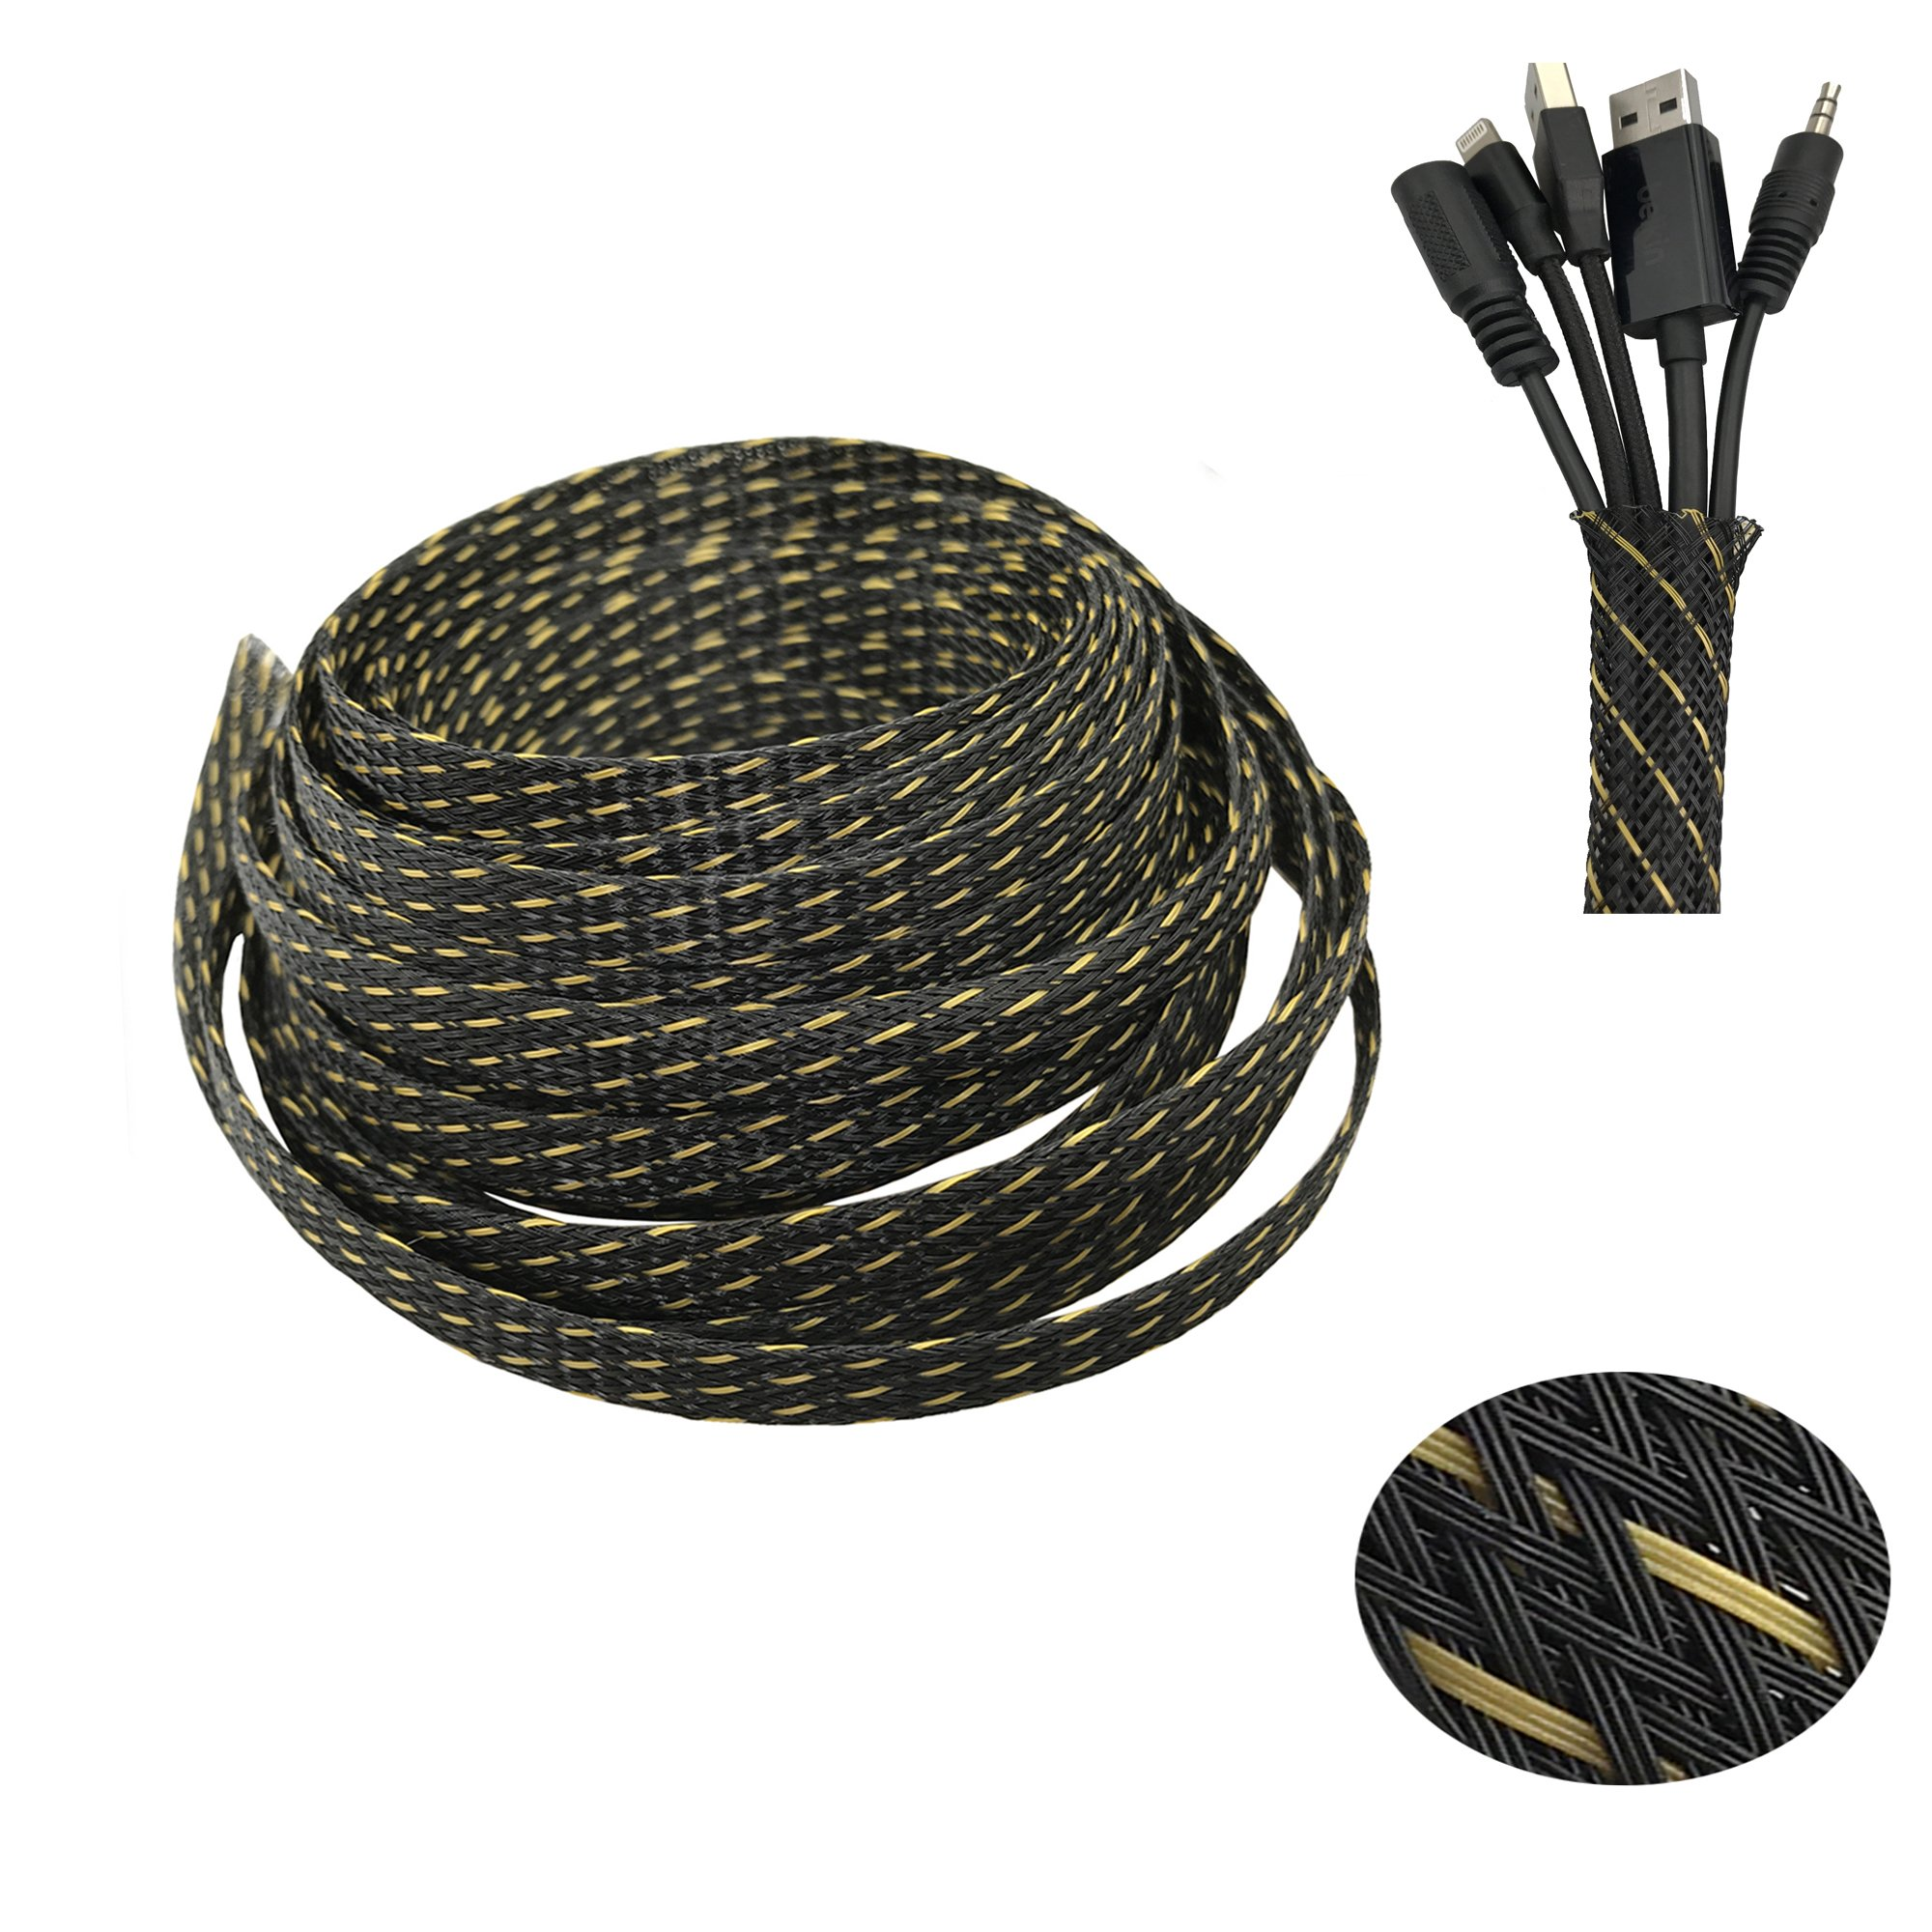 Cable management, Sleeving PET Expandable Braided Sleeve Blackyellow Cable Management Sheath for Home Office 25ft-1/2